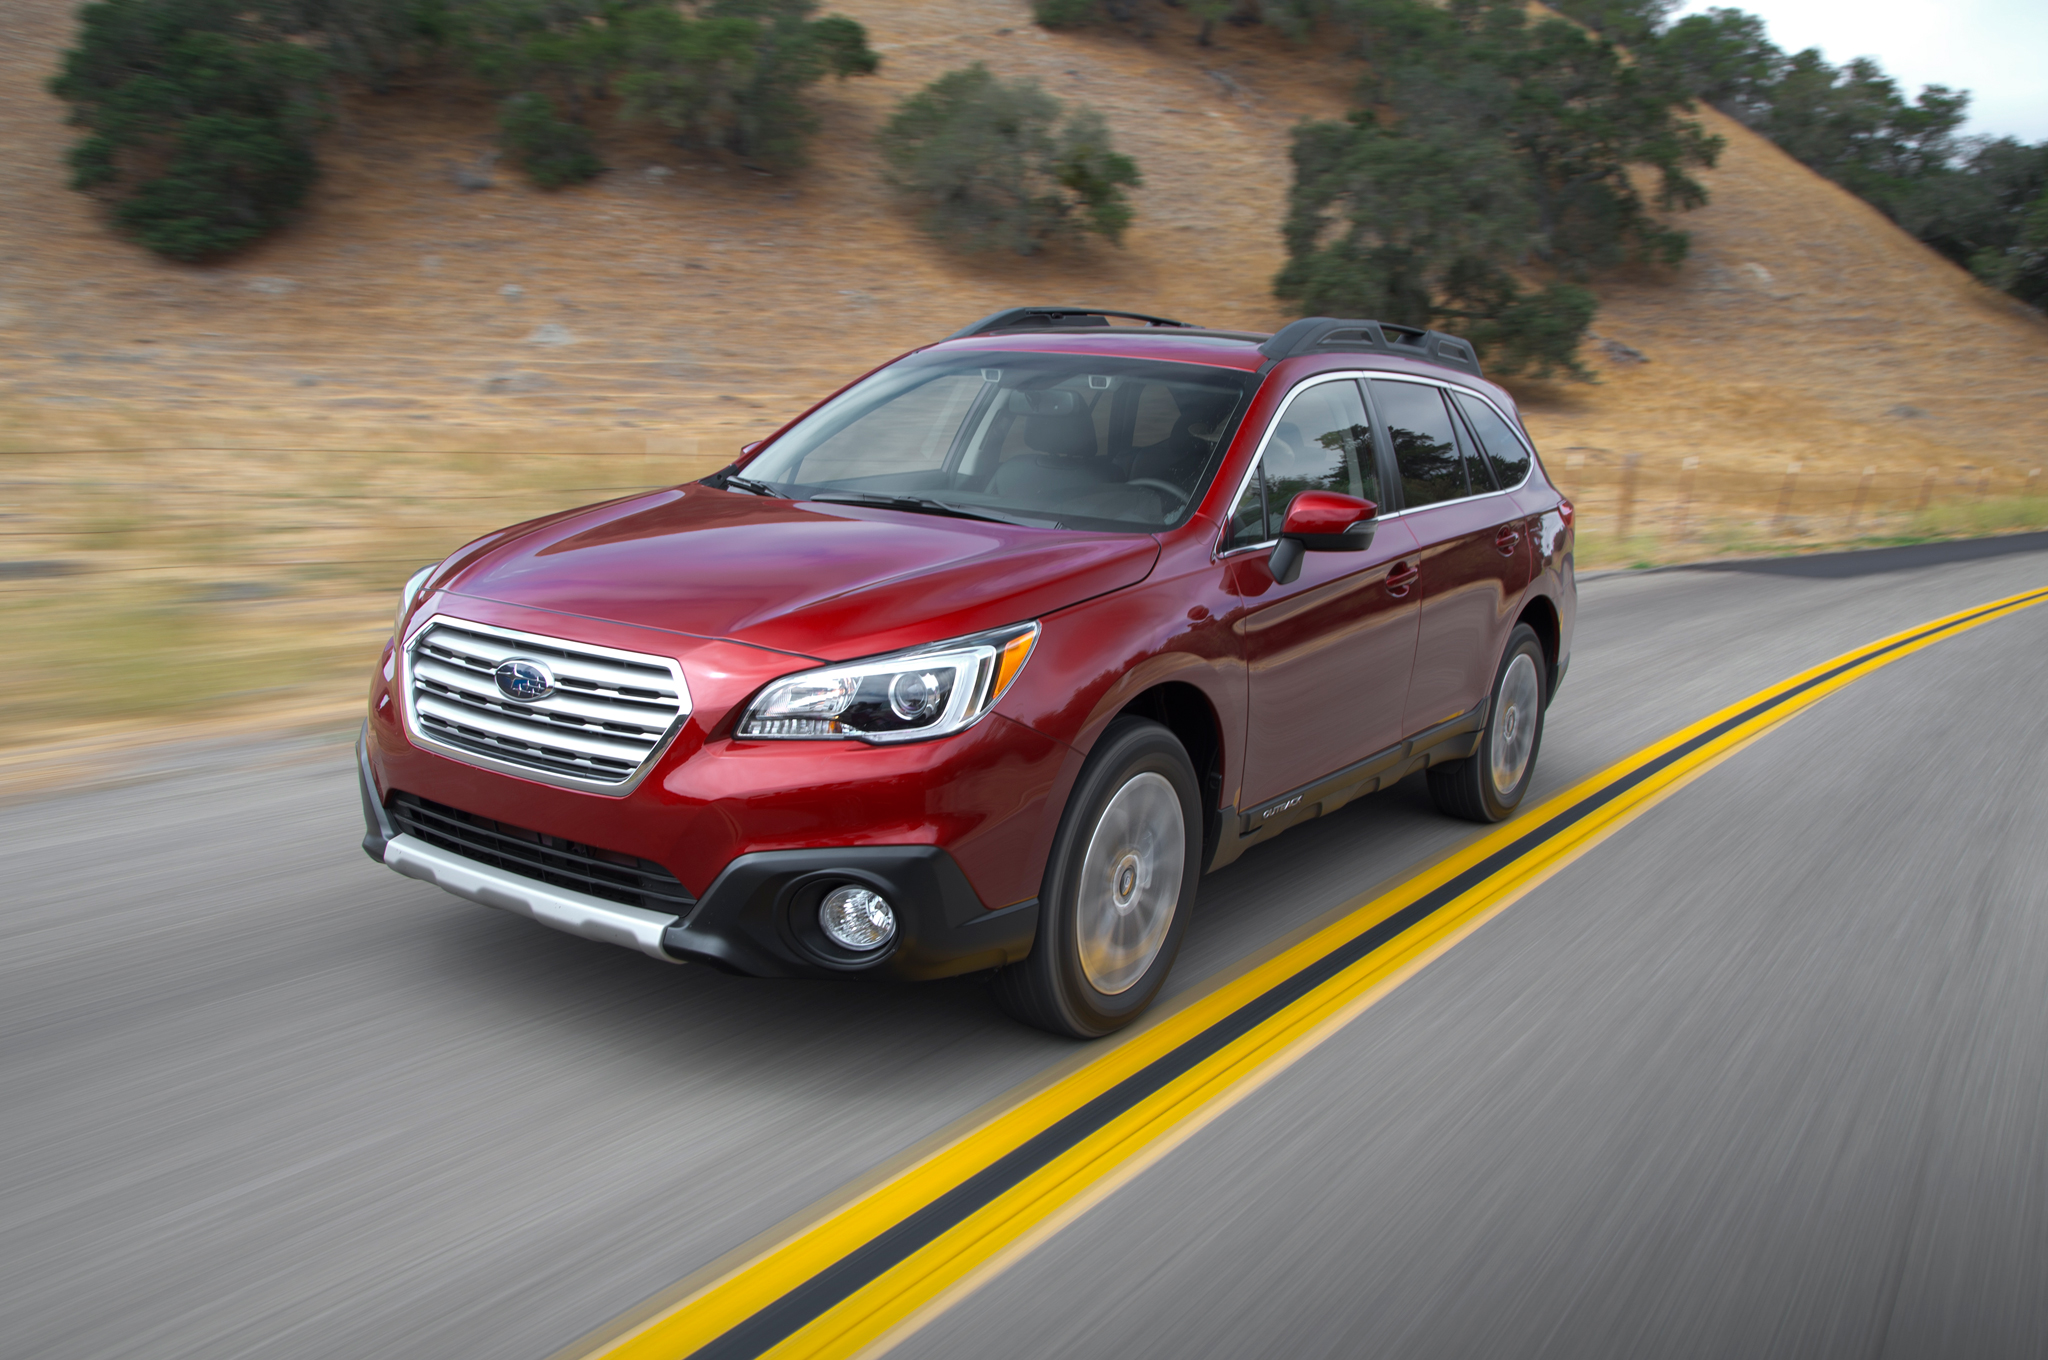 2015 subaru outback 3 6r first test [ 2048 x 1360 Pixel ]